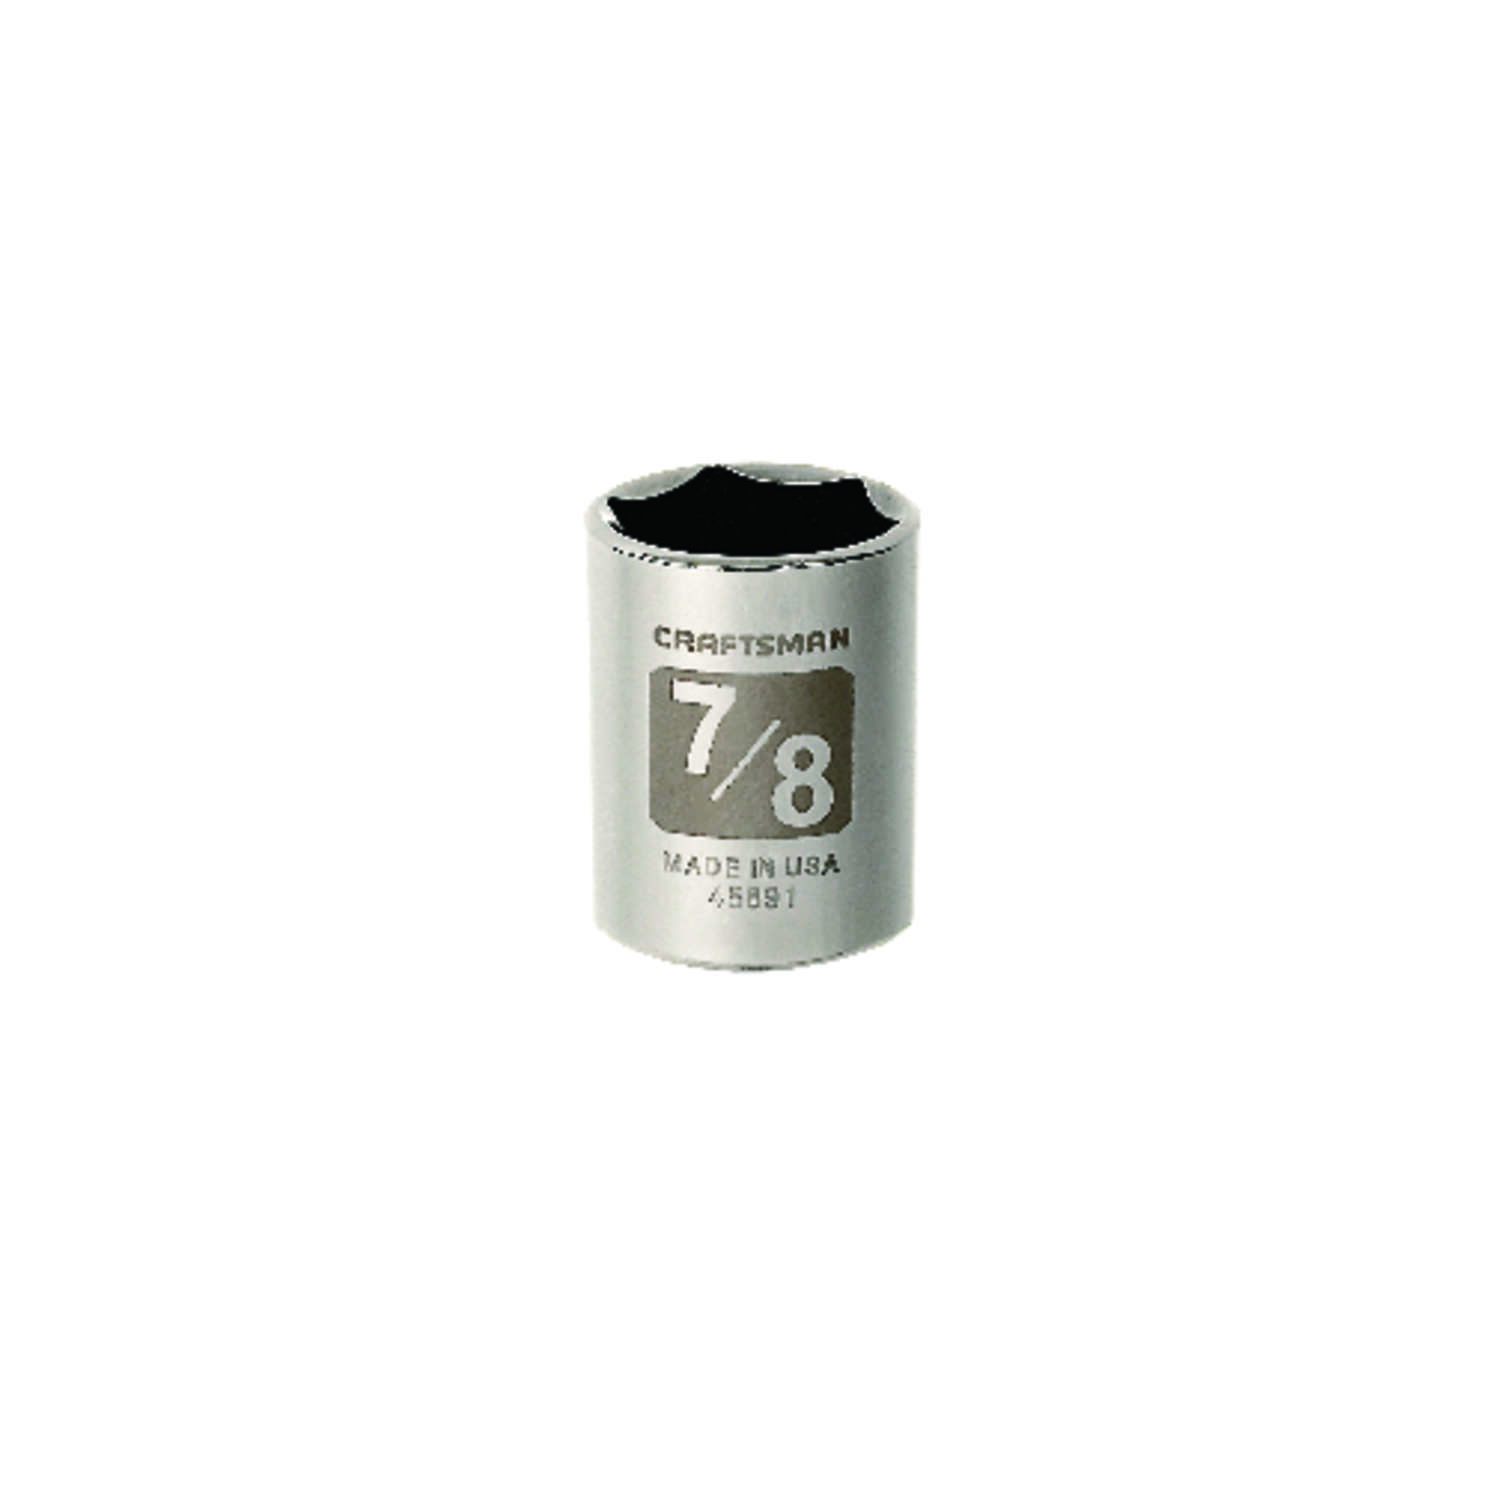 Craftsman  7/8 in.  x 1/2 in. drive  SAE  6 Point Standard  Socket  1 pc.